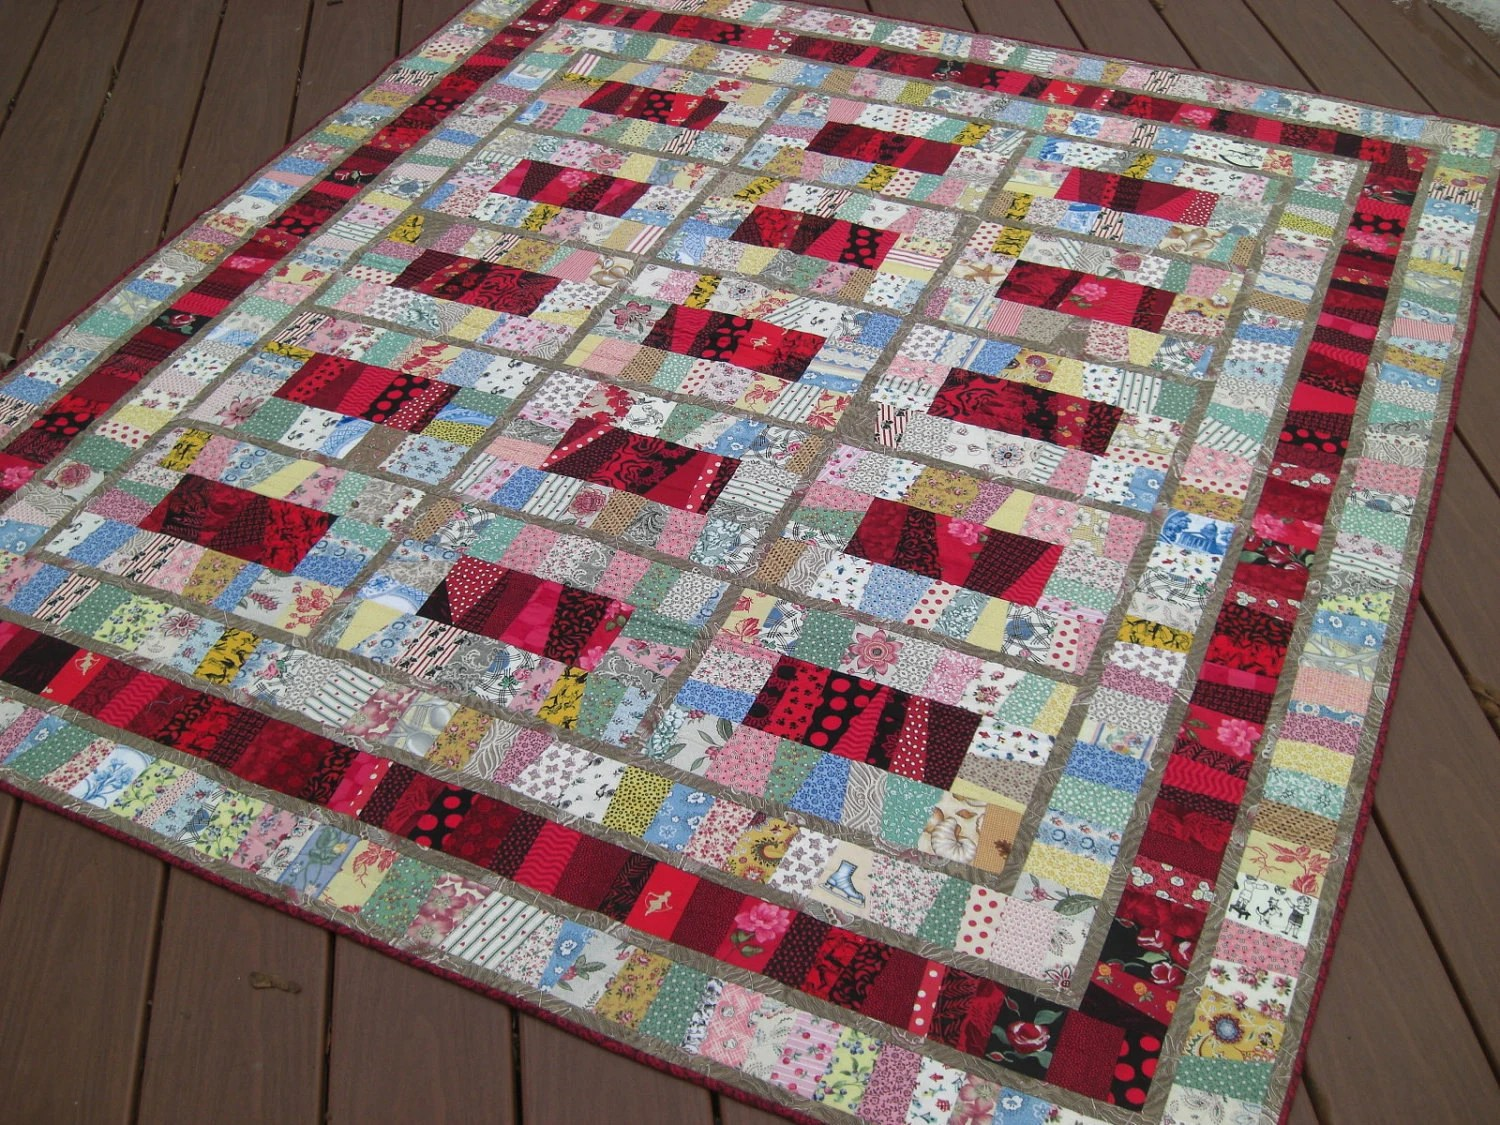 "Retro TwinBed Wall Quilt, Reds & Pastel Novelty Prints, 60"" x 66.5"""